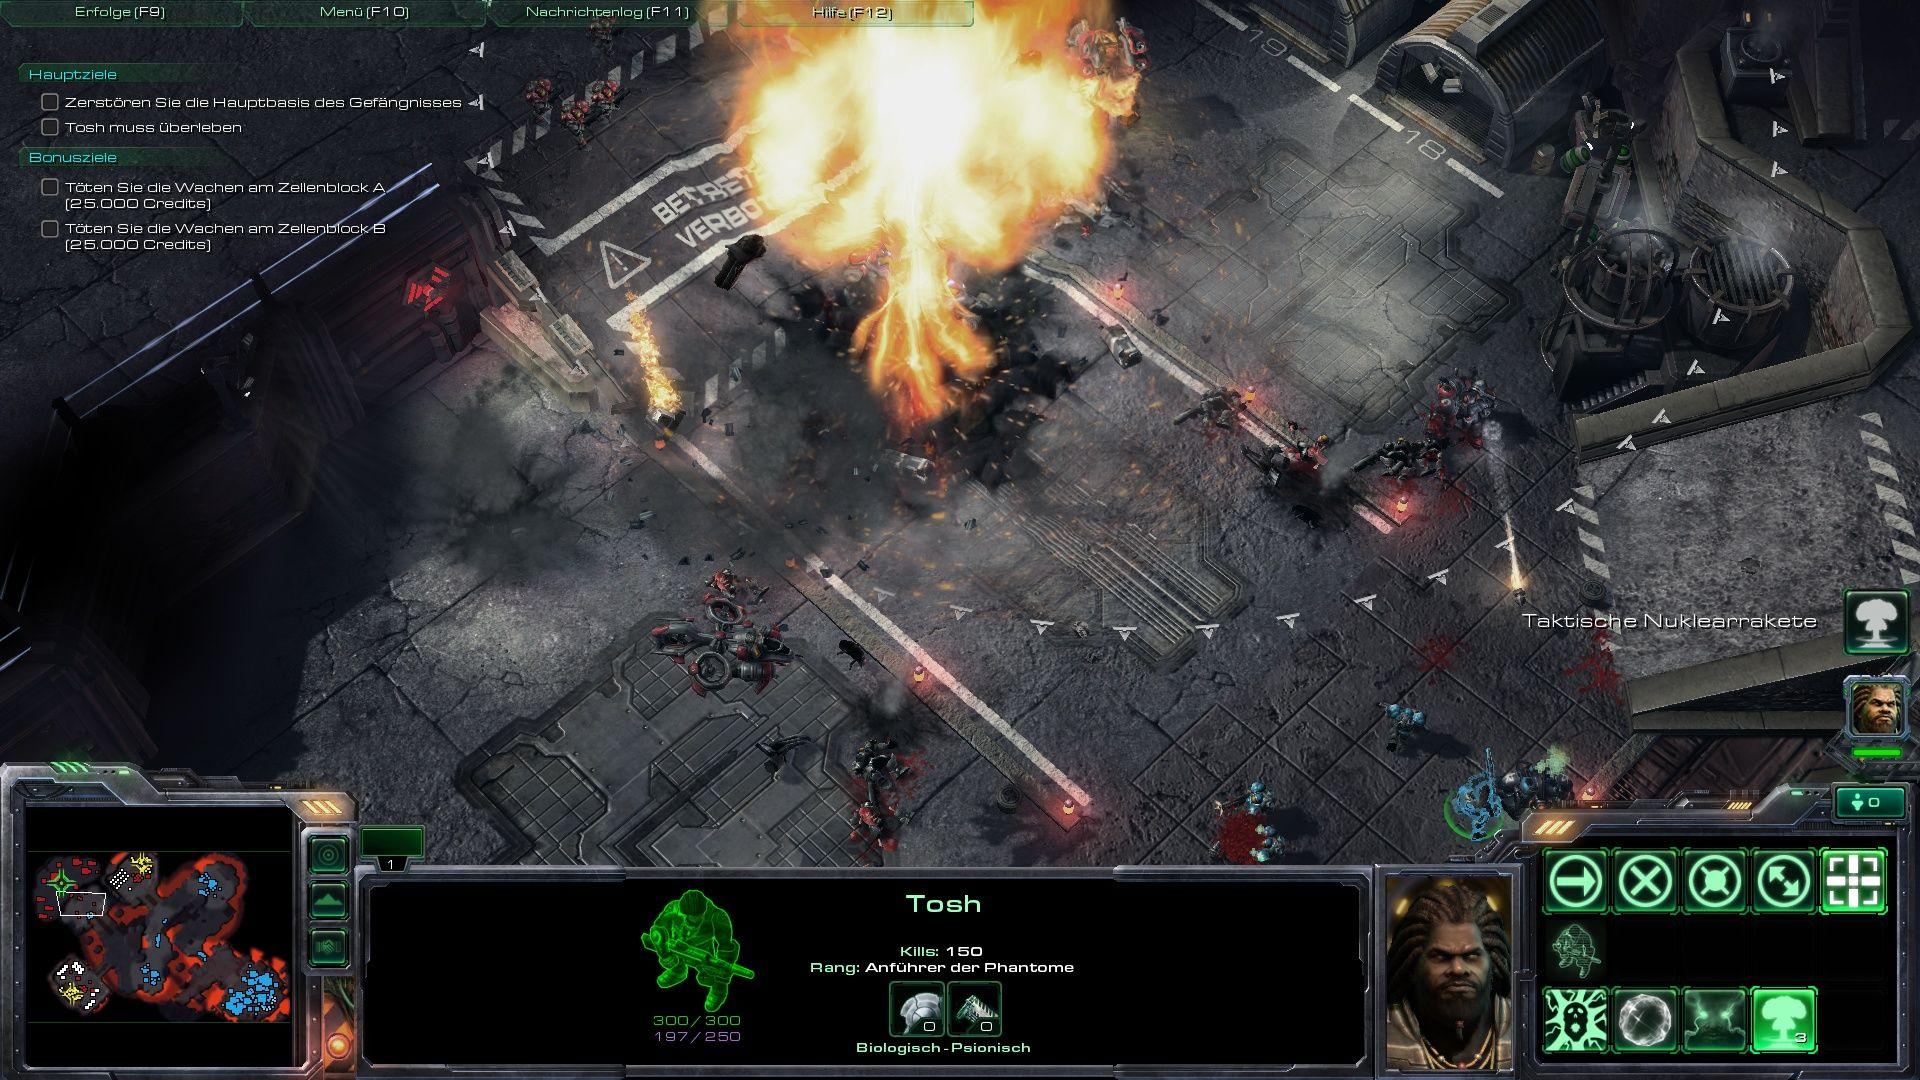 StarCraft II: Wings of Liberty Windows Tactical nuke detonated!